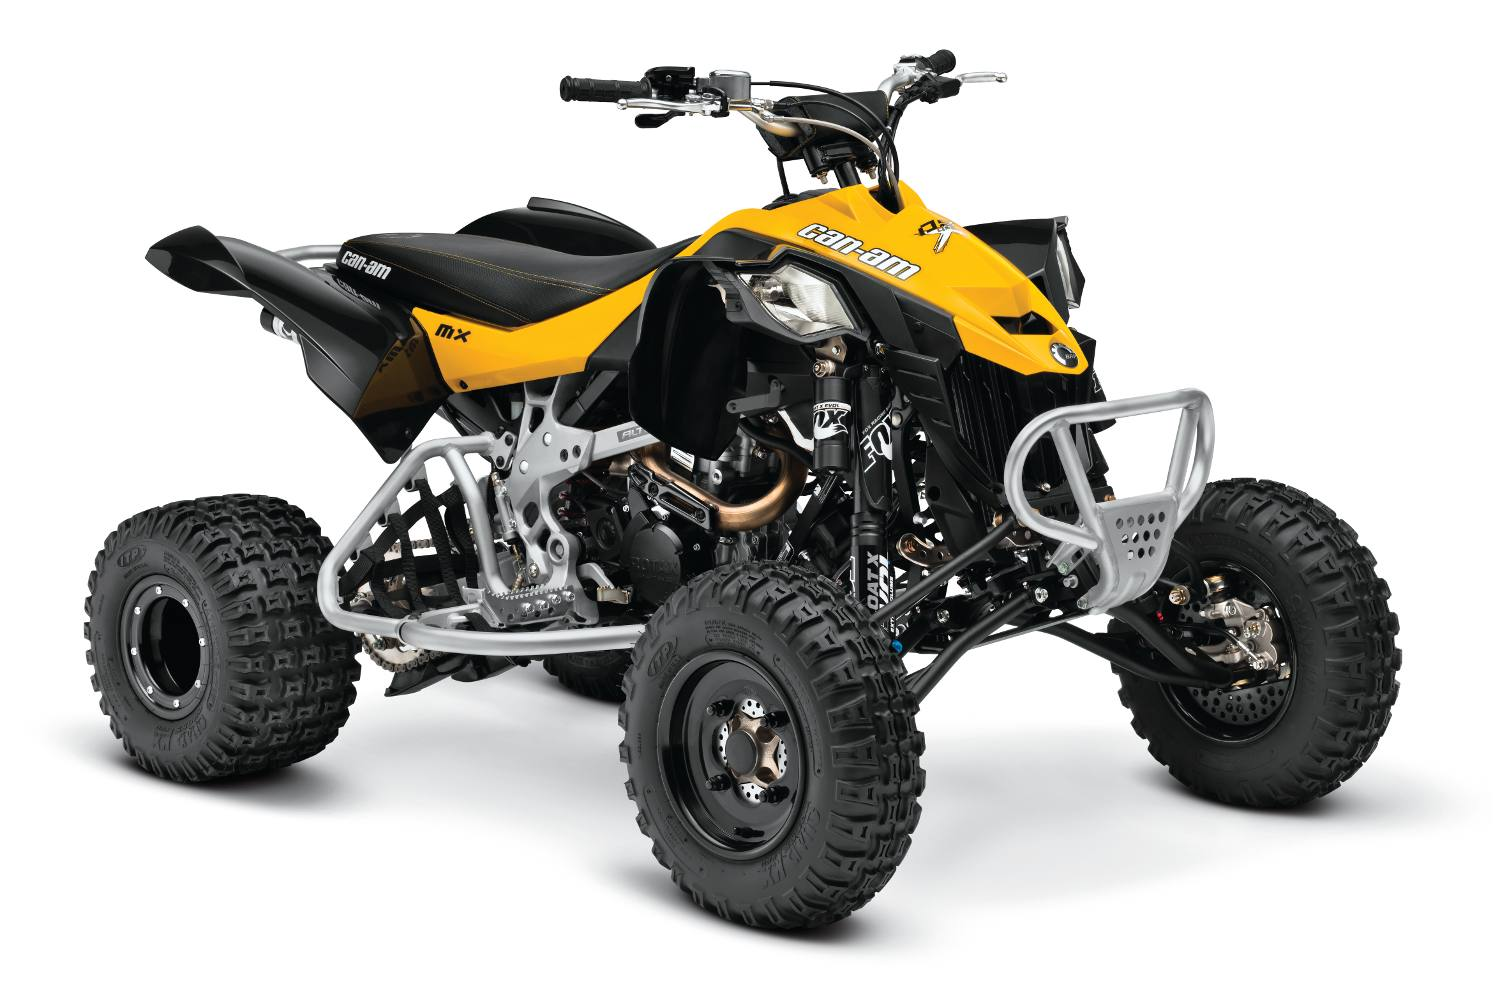 2015 Can-Am DS 450® X mx for sale in St. George's, NL | Central Service  Station Ltd. (709) 647-3501